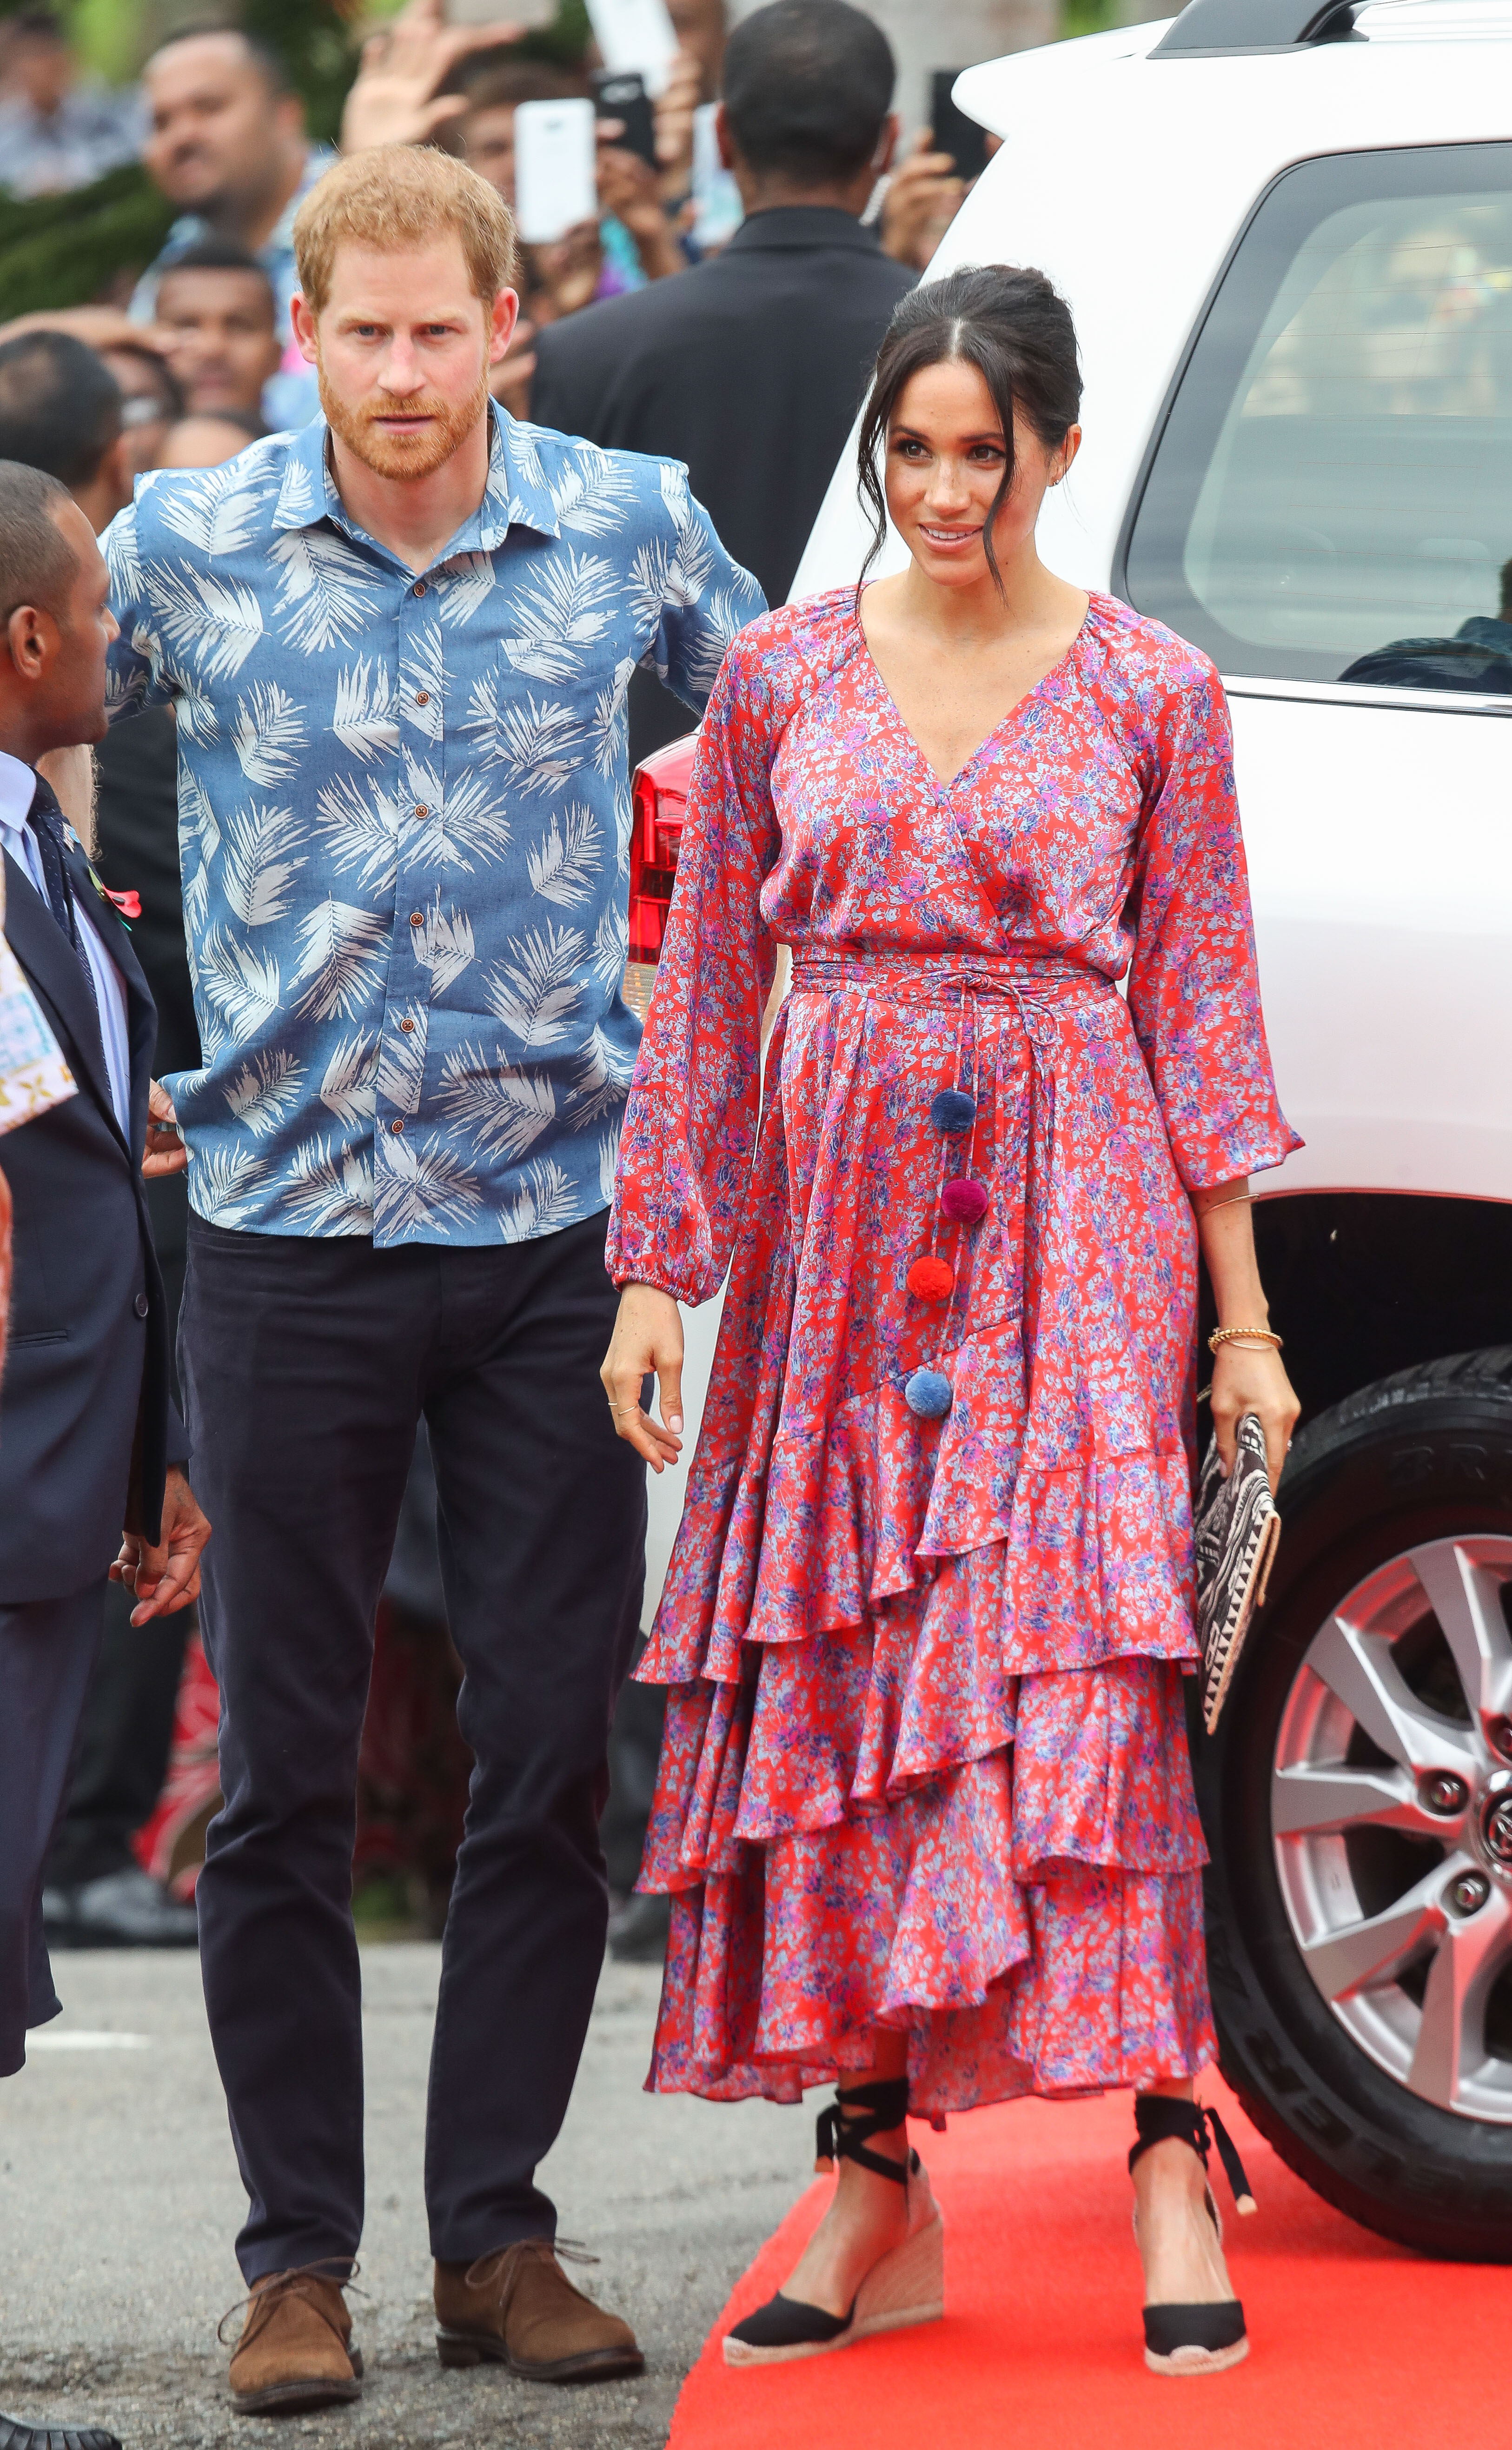 Prince Harry, Duke of Sussex and Meghan, Duchess of Sussex attend University of the South Pacific on October 24, 2018 in Suva, Fiji. The Duke and Duchess of Sussex are on their official 16-day Autumn tour visiting cities in Australia, Fiji, Tonga and New Zealand (Getty Images)